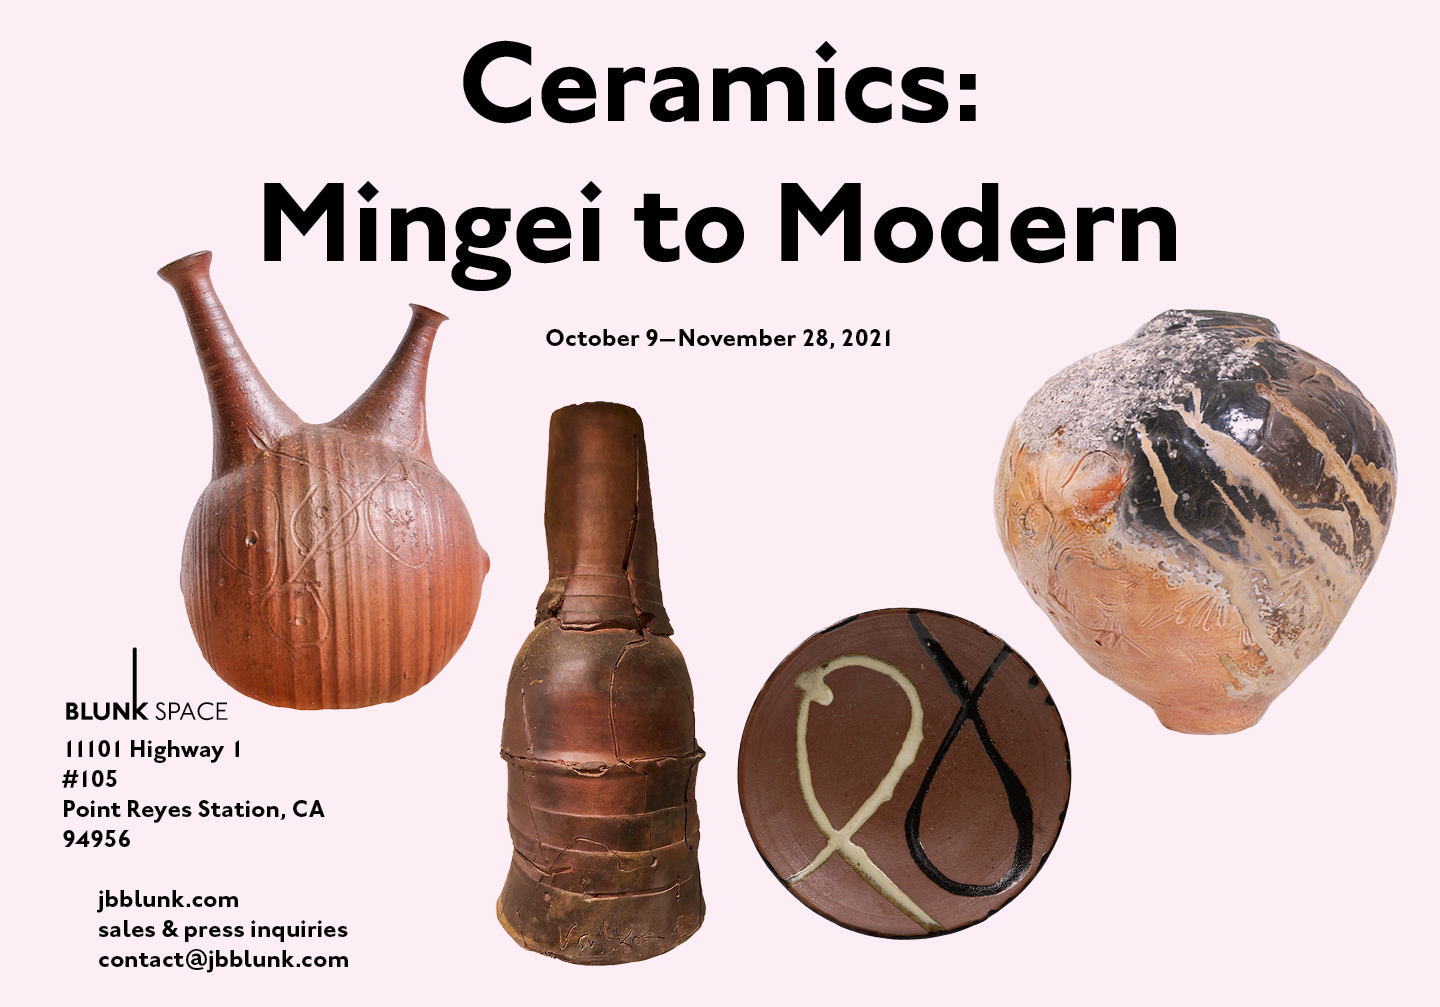 """The text """"Ceramics: Mingei to Modern"""" hovers above four photos of ceramic artworks, three of which are generally spherical and another upright and cylindrical. In the bottom left of the advertisement, the address and contact information for the event are included in small print."""